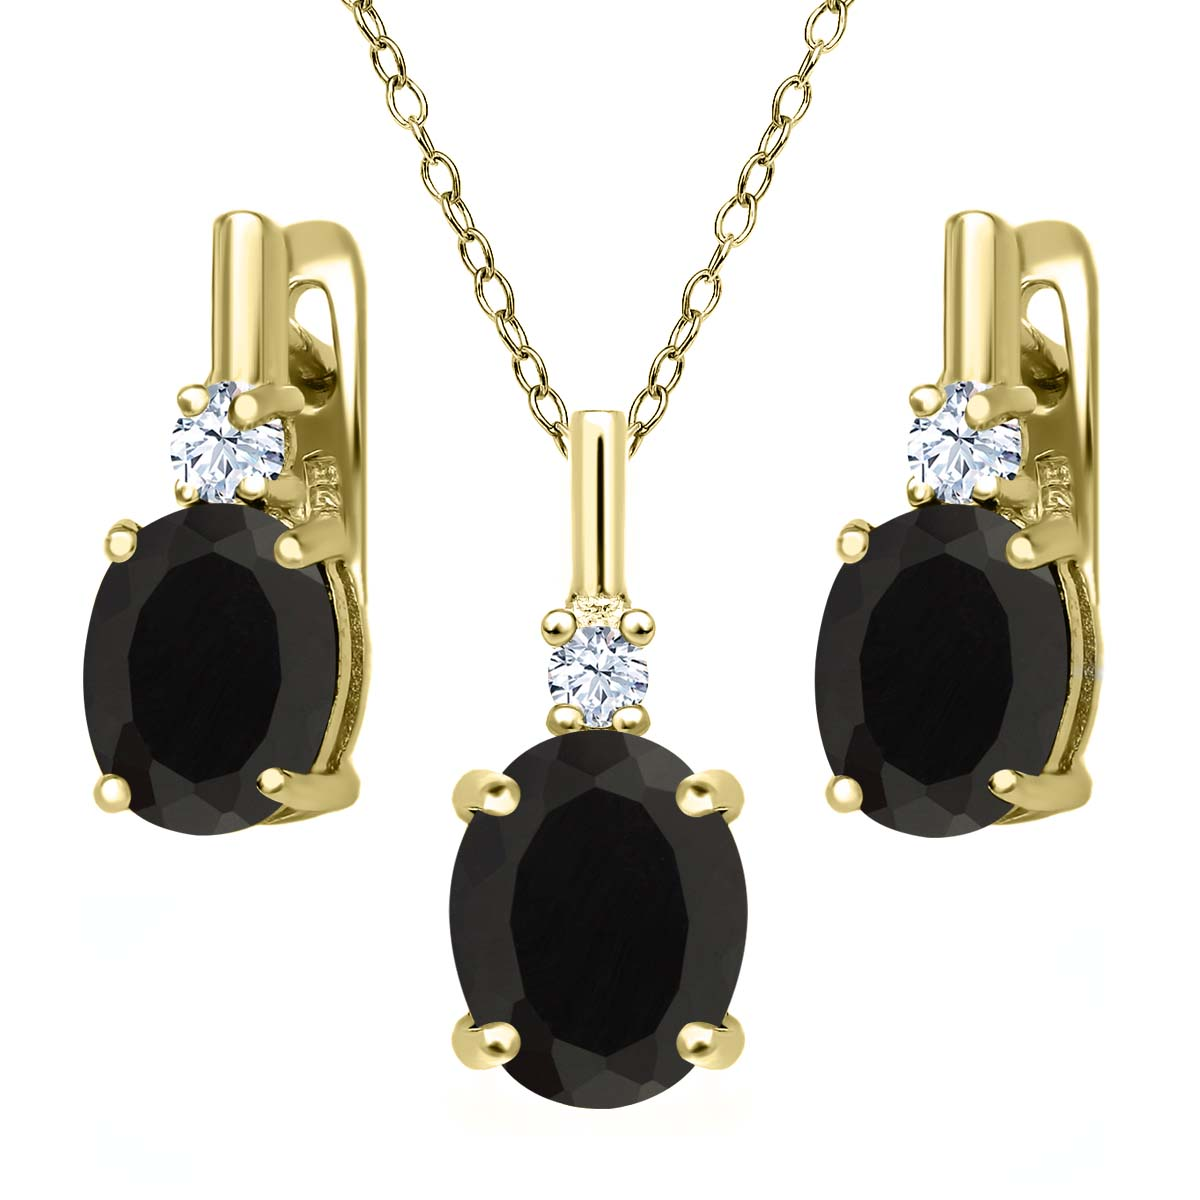 4.97 Ct Black Onyx White Topaz 18K Yellow Gold Plated Silver Pendant Earrings Set by